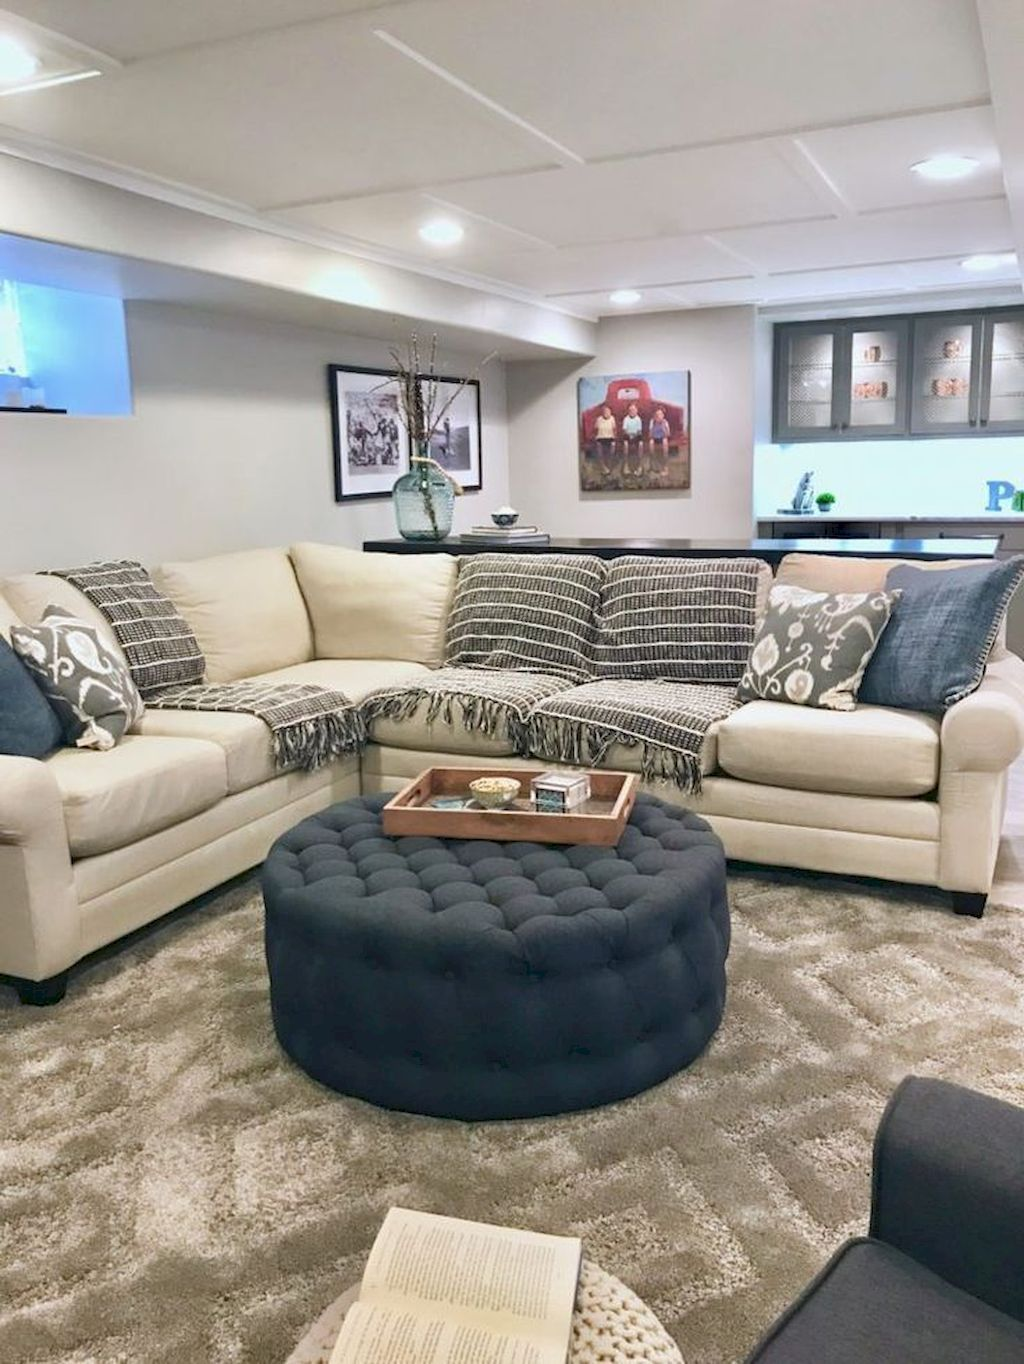 Stunning Basement Remodel Ideas Be A Beautiful Living Space 30